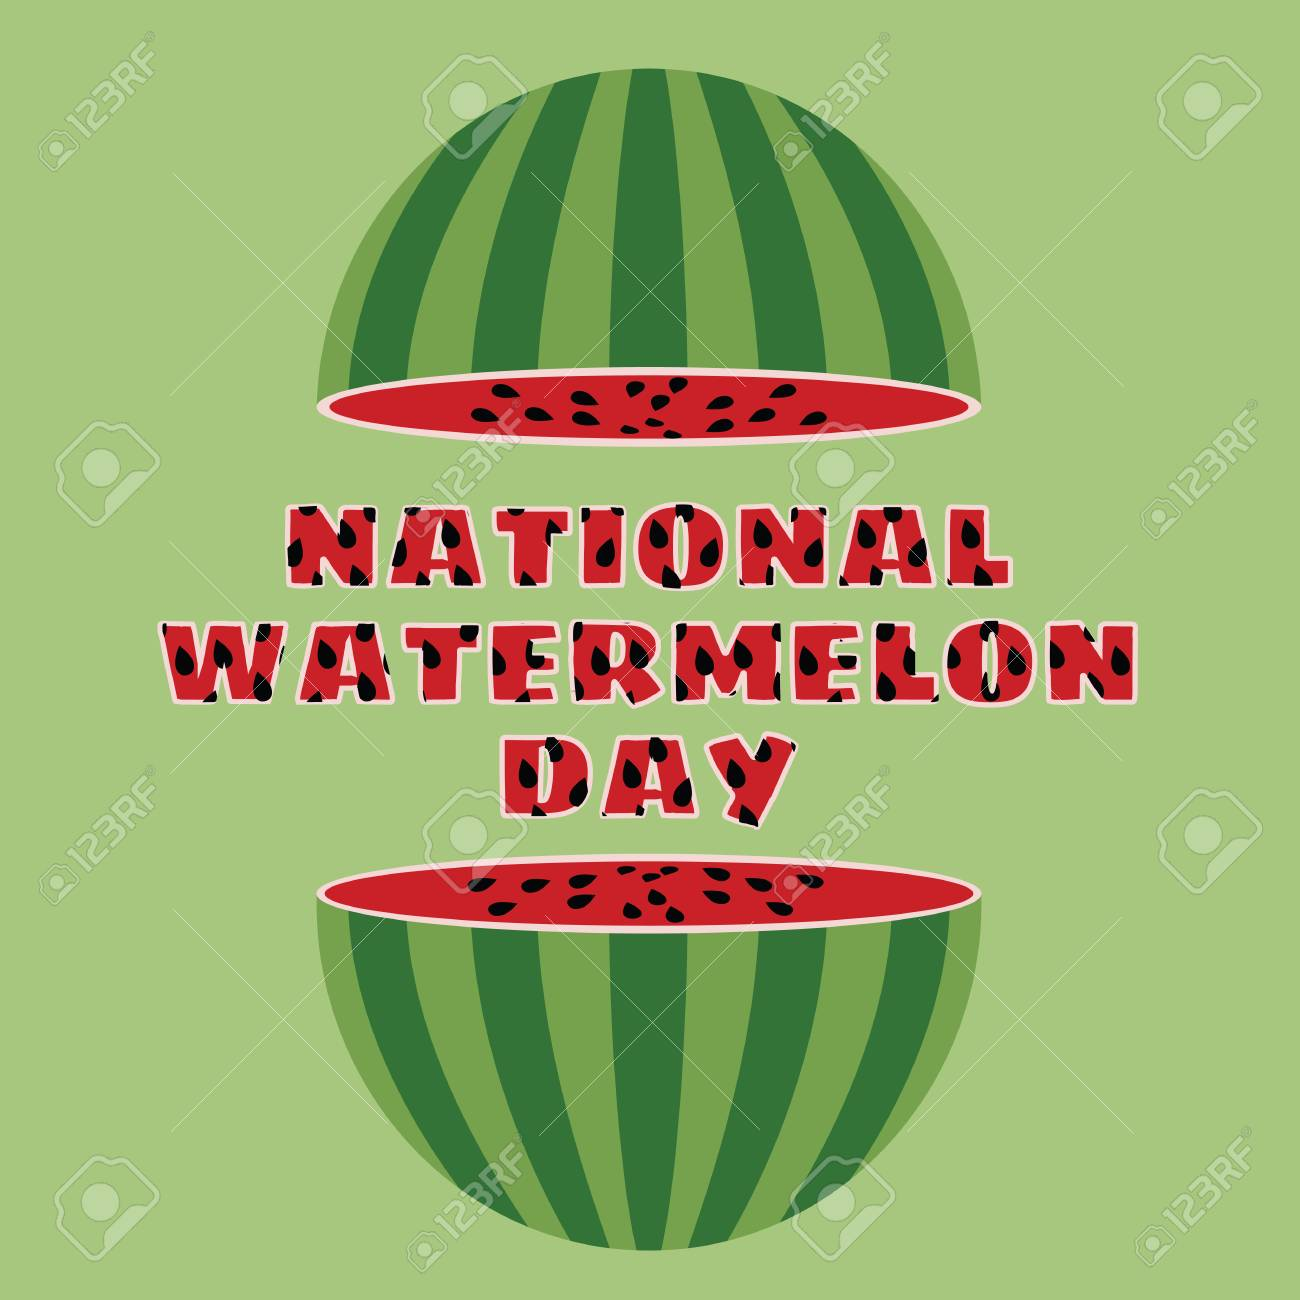 National Watermelon Day Pictures